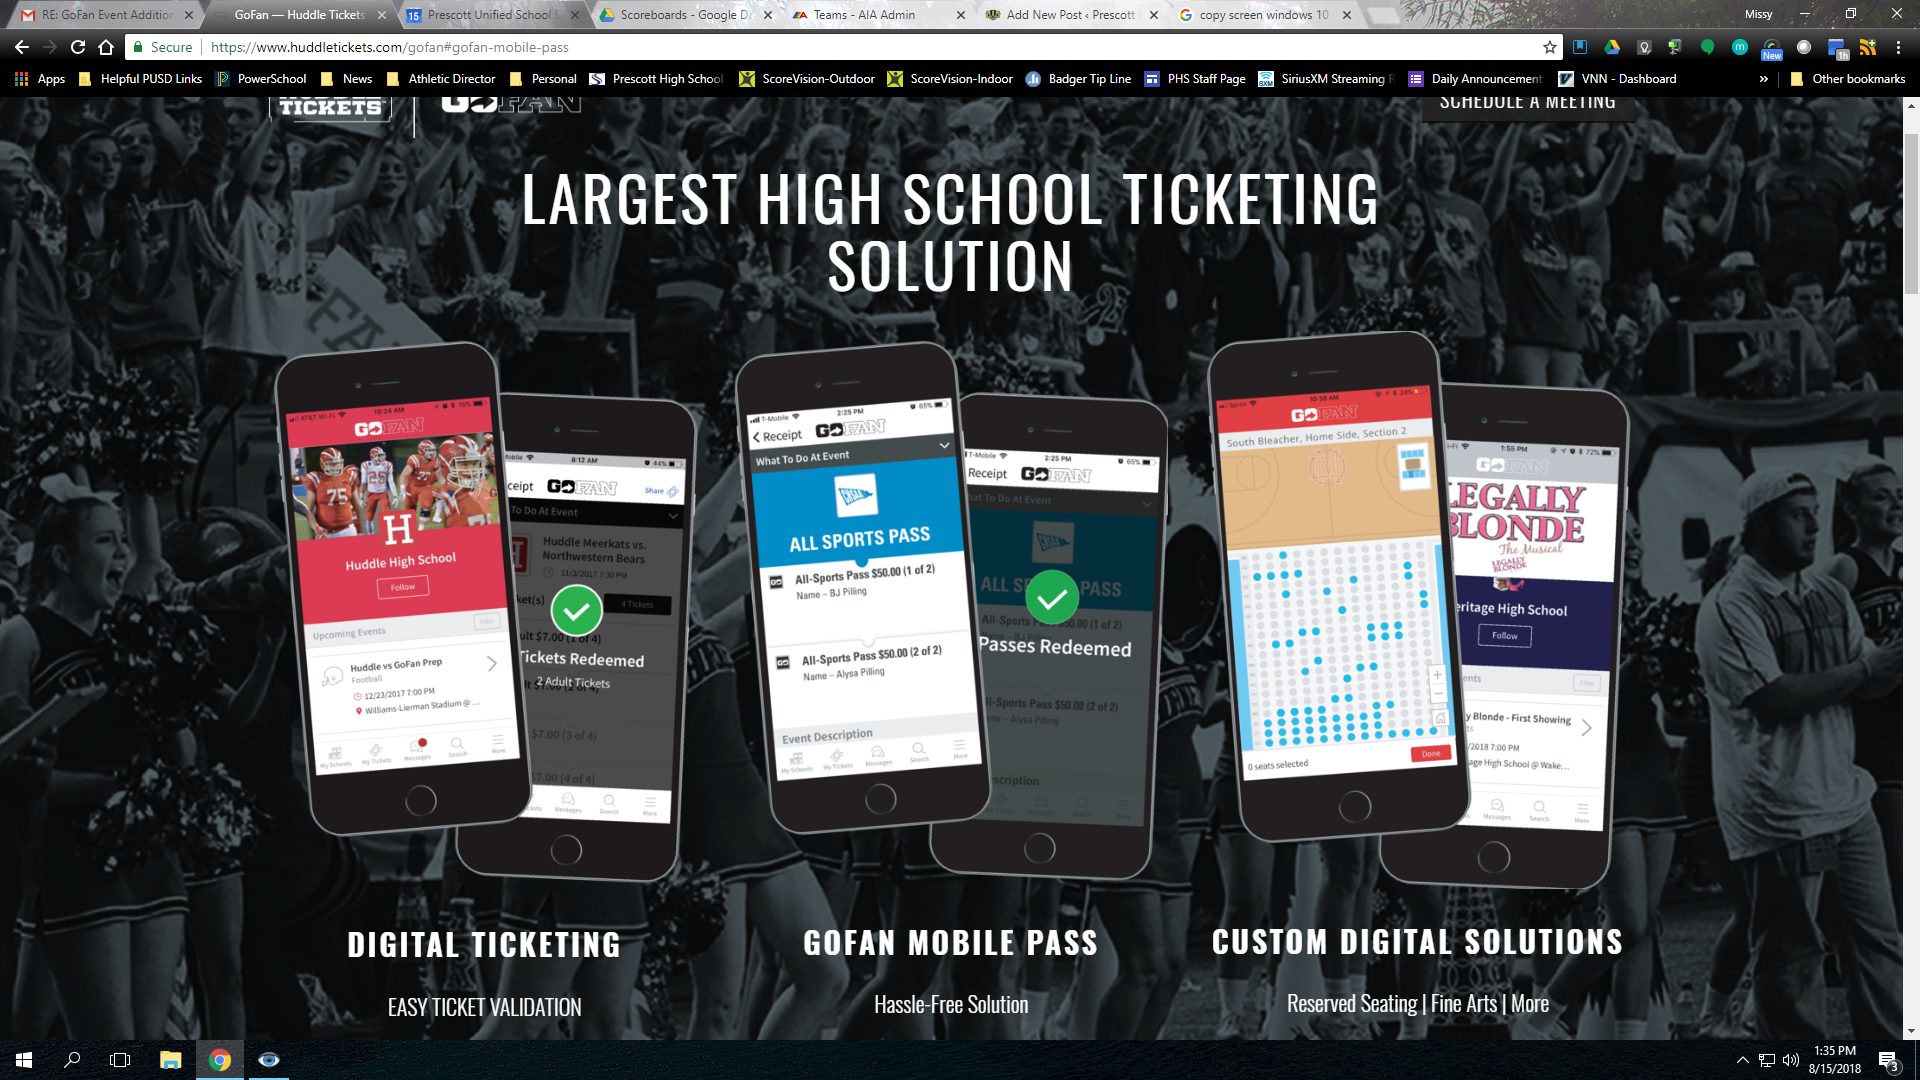 Skip Lines Get Tickets Online for Football